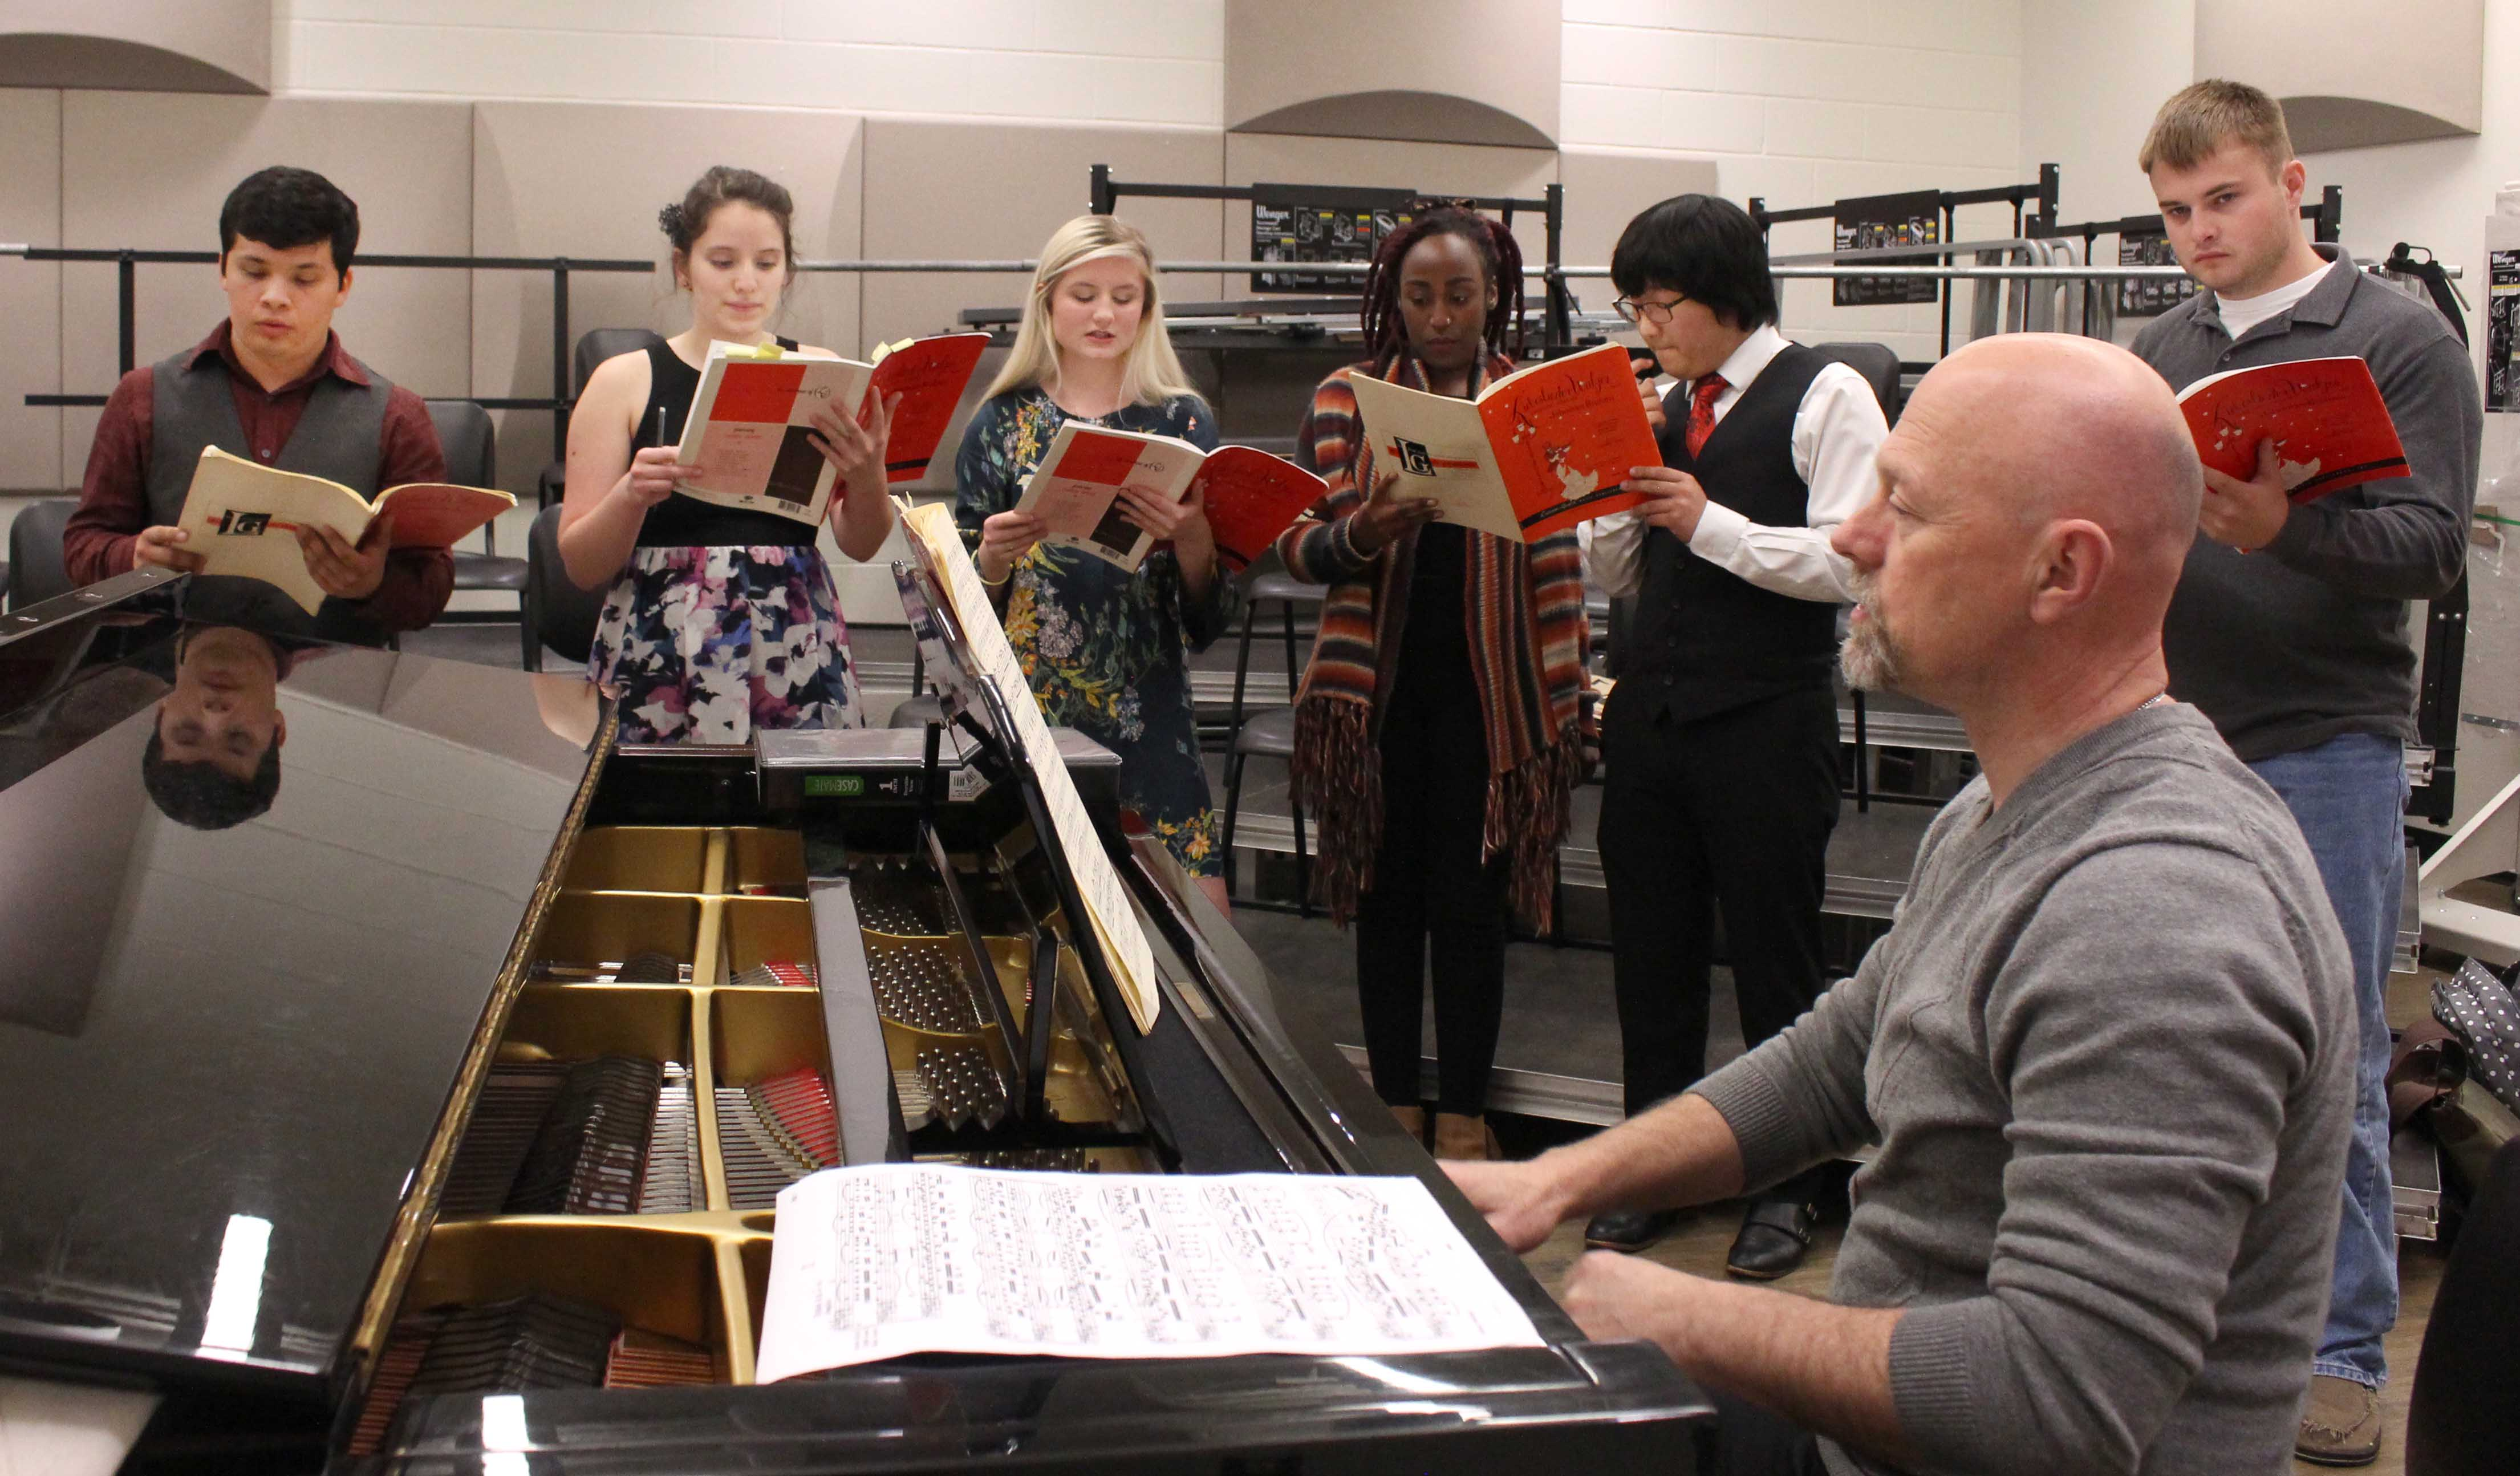 NE music instructor and choir director Stan Paschal works with students as they learn their parts for a song they will perform during the Dessert Theater.